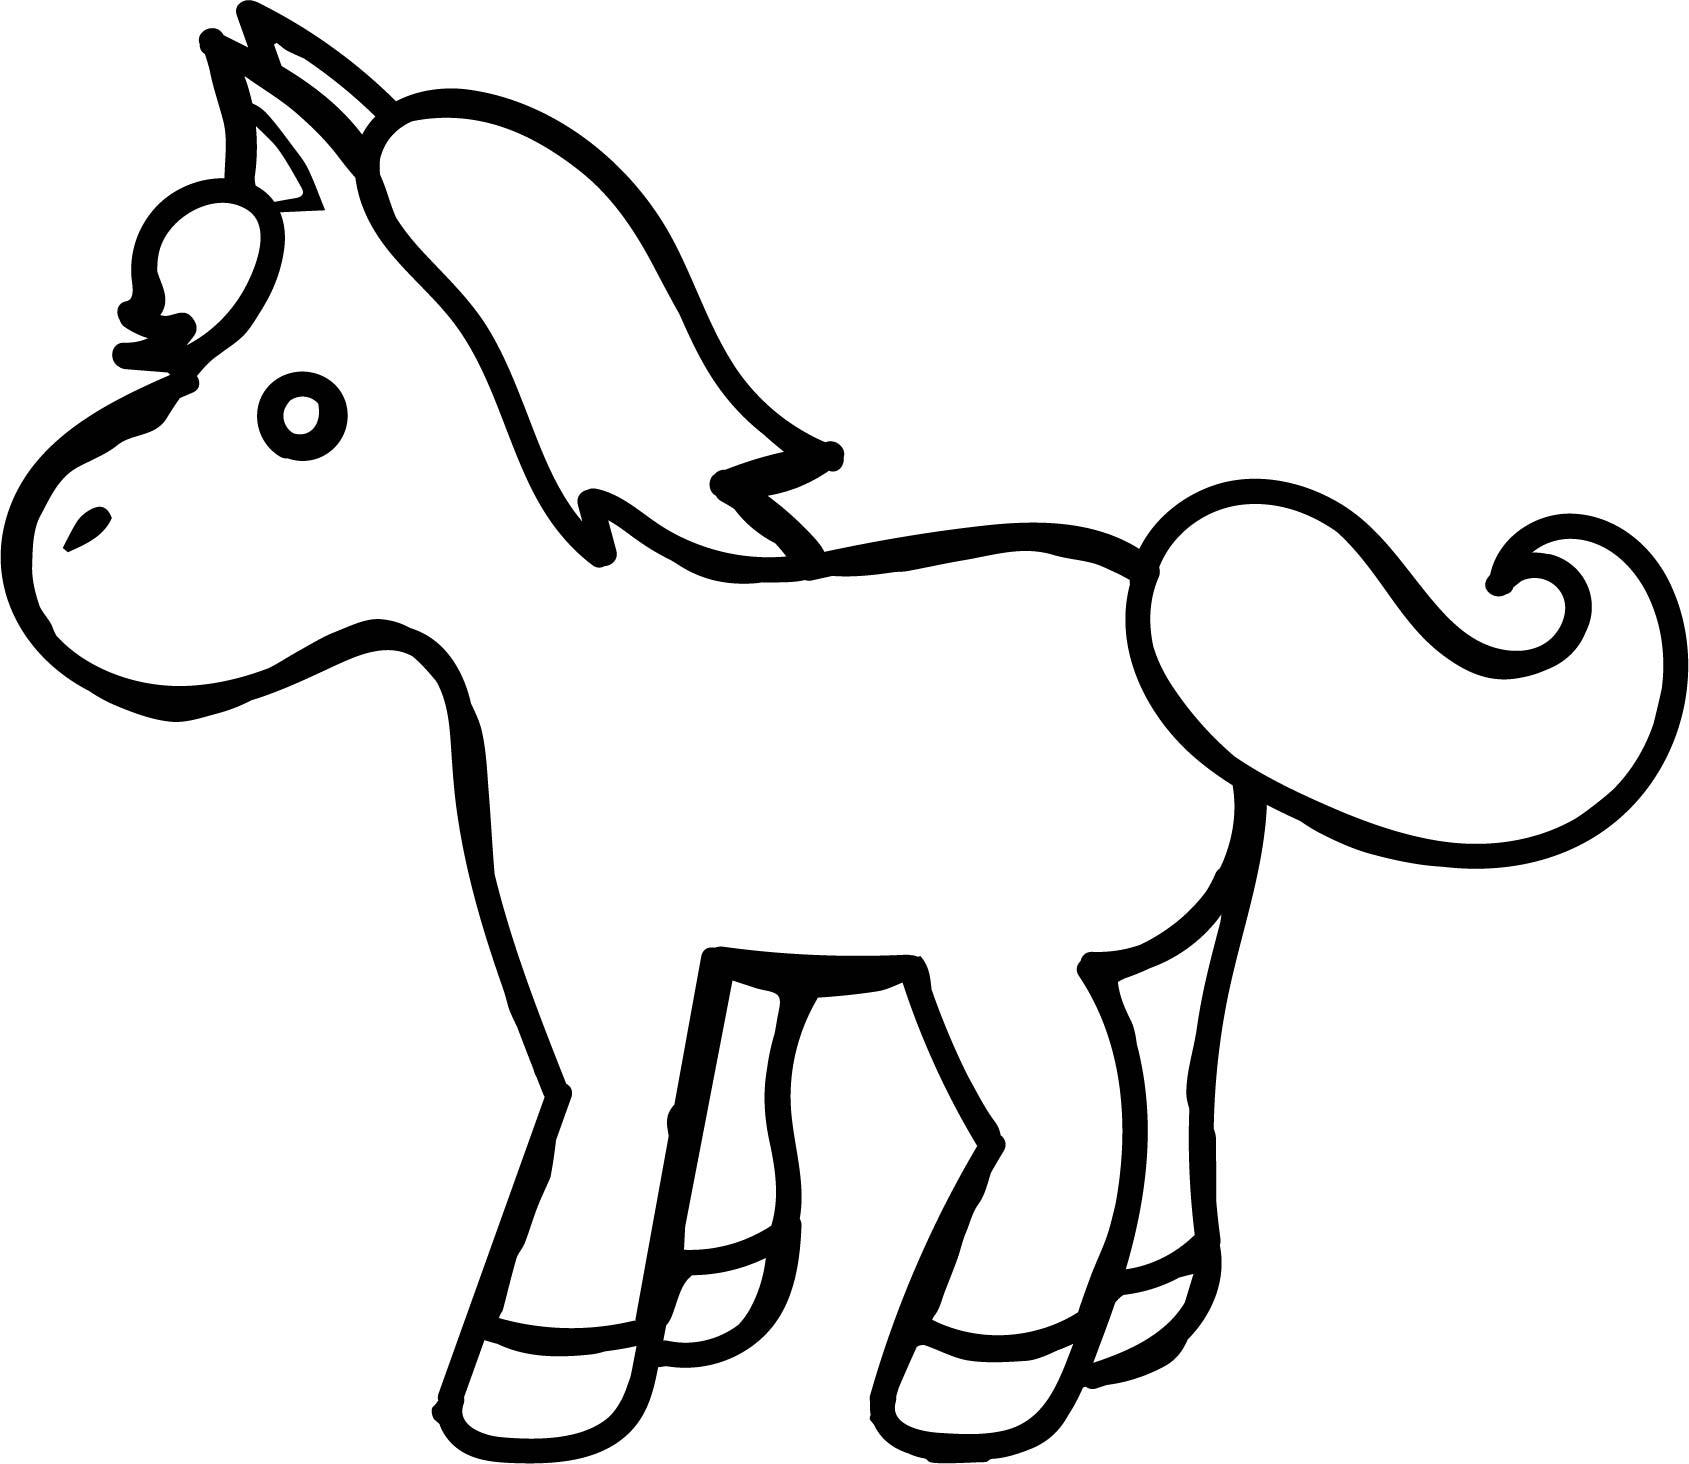 1689x1464 Shocking Small Cartoon Horse Coloring Page Wecoloringpage Pict